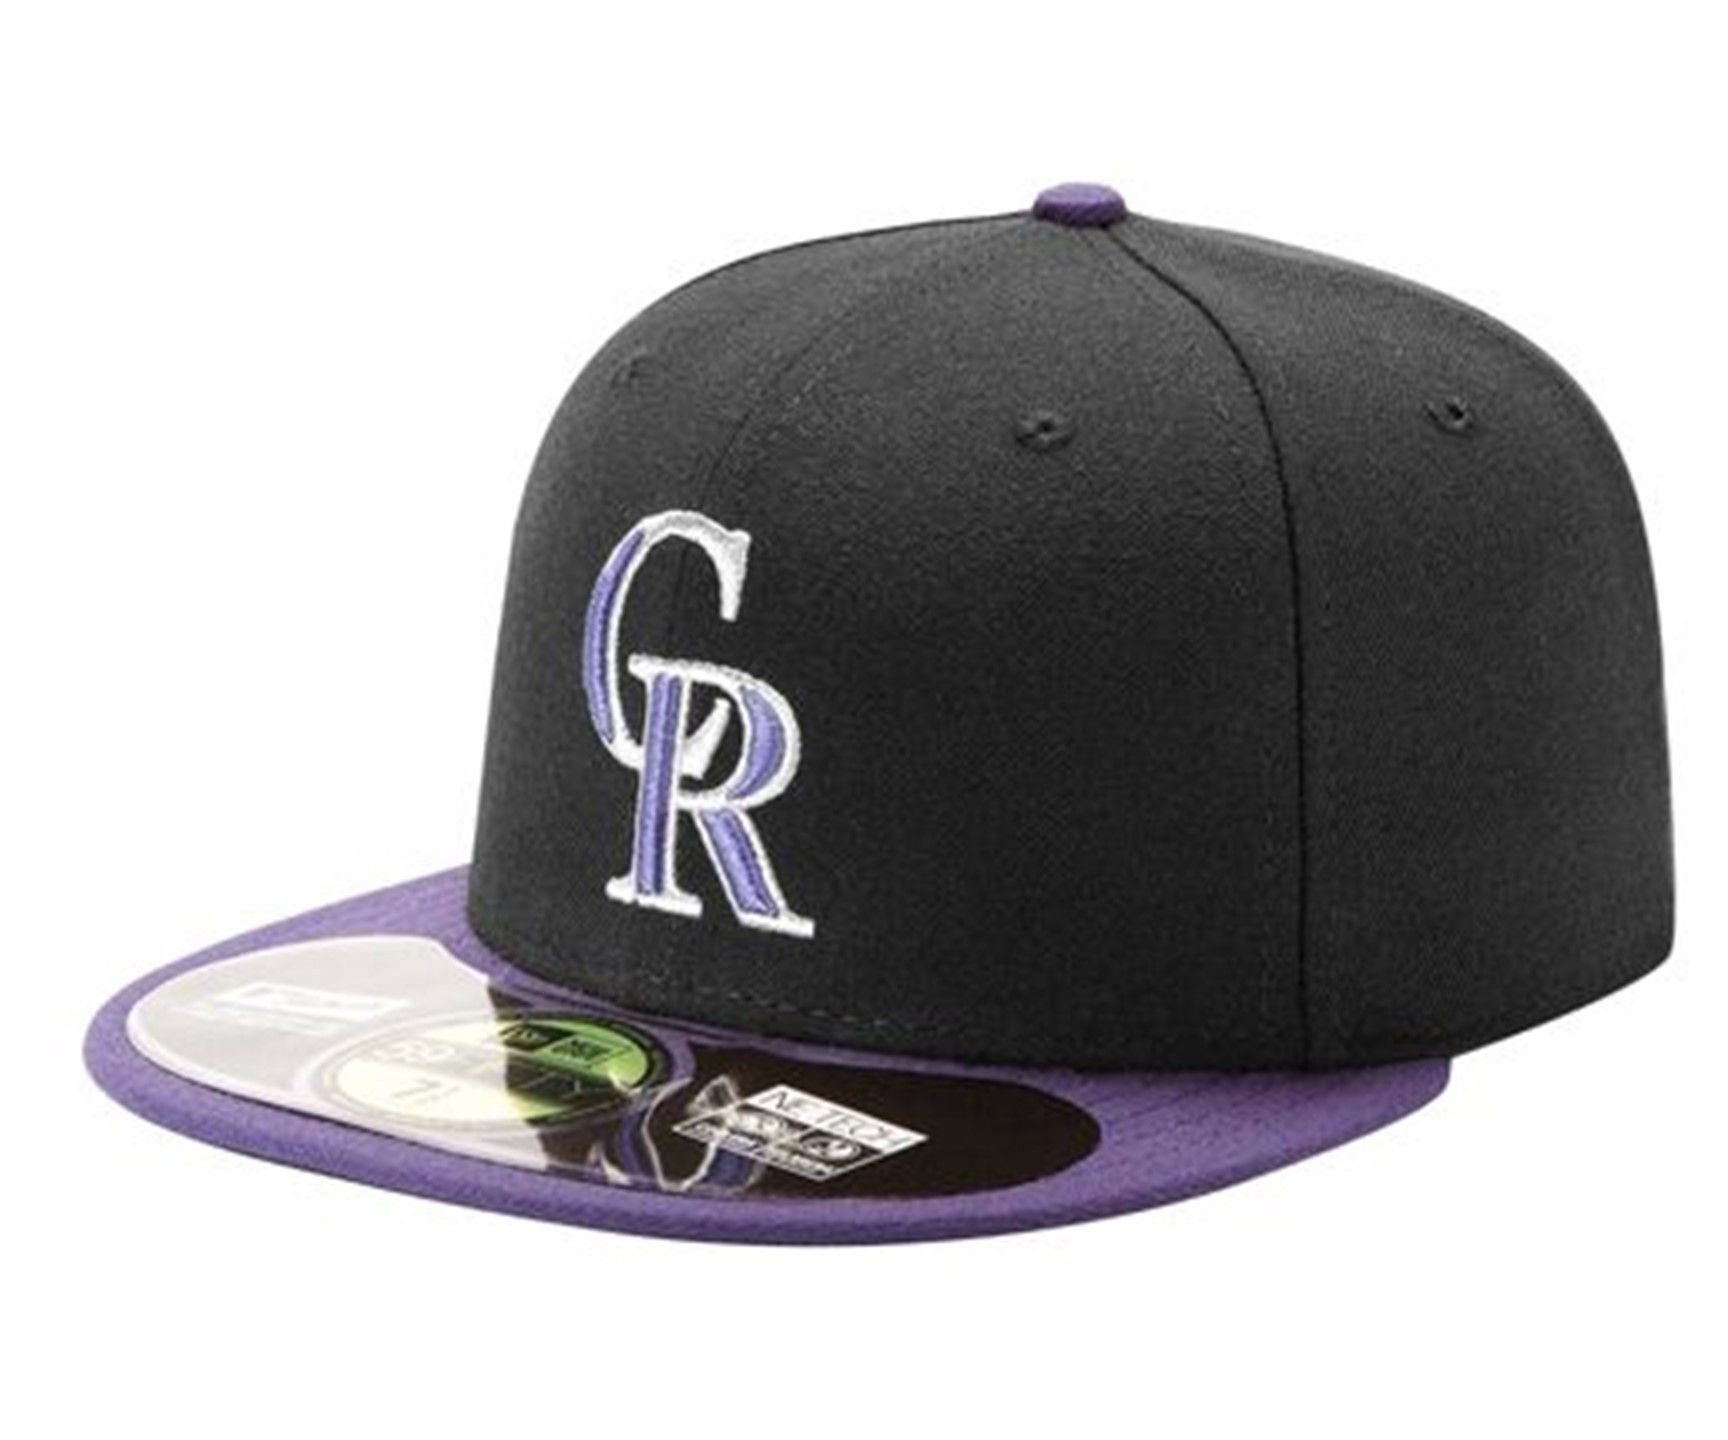 5ee81bf6048 Colorado Rockies CR New Era 59Fifty Fitted Hat Black Purple ...